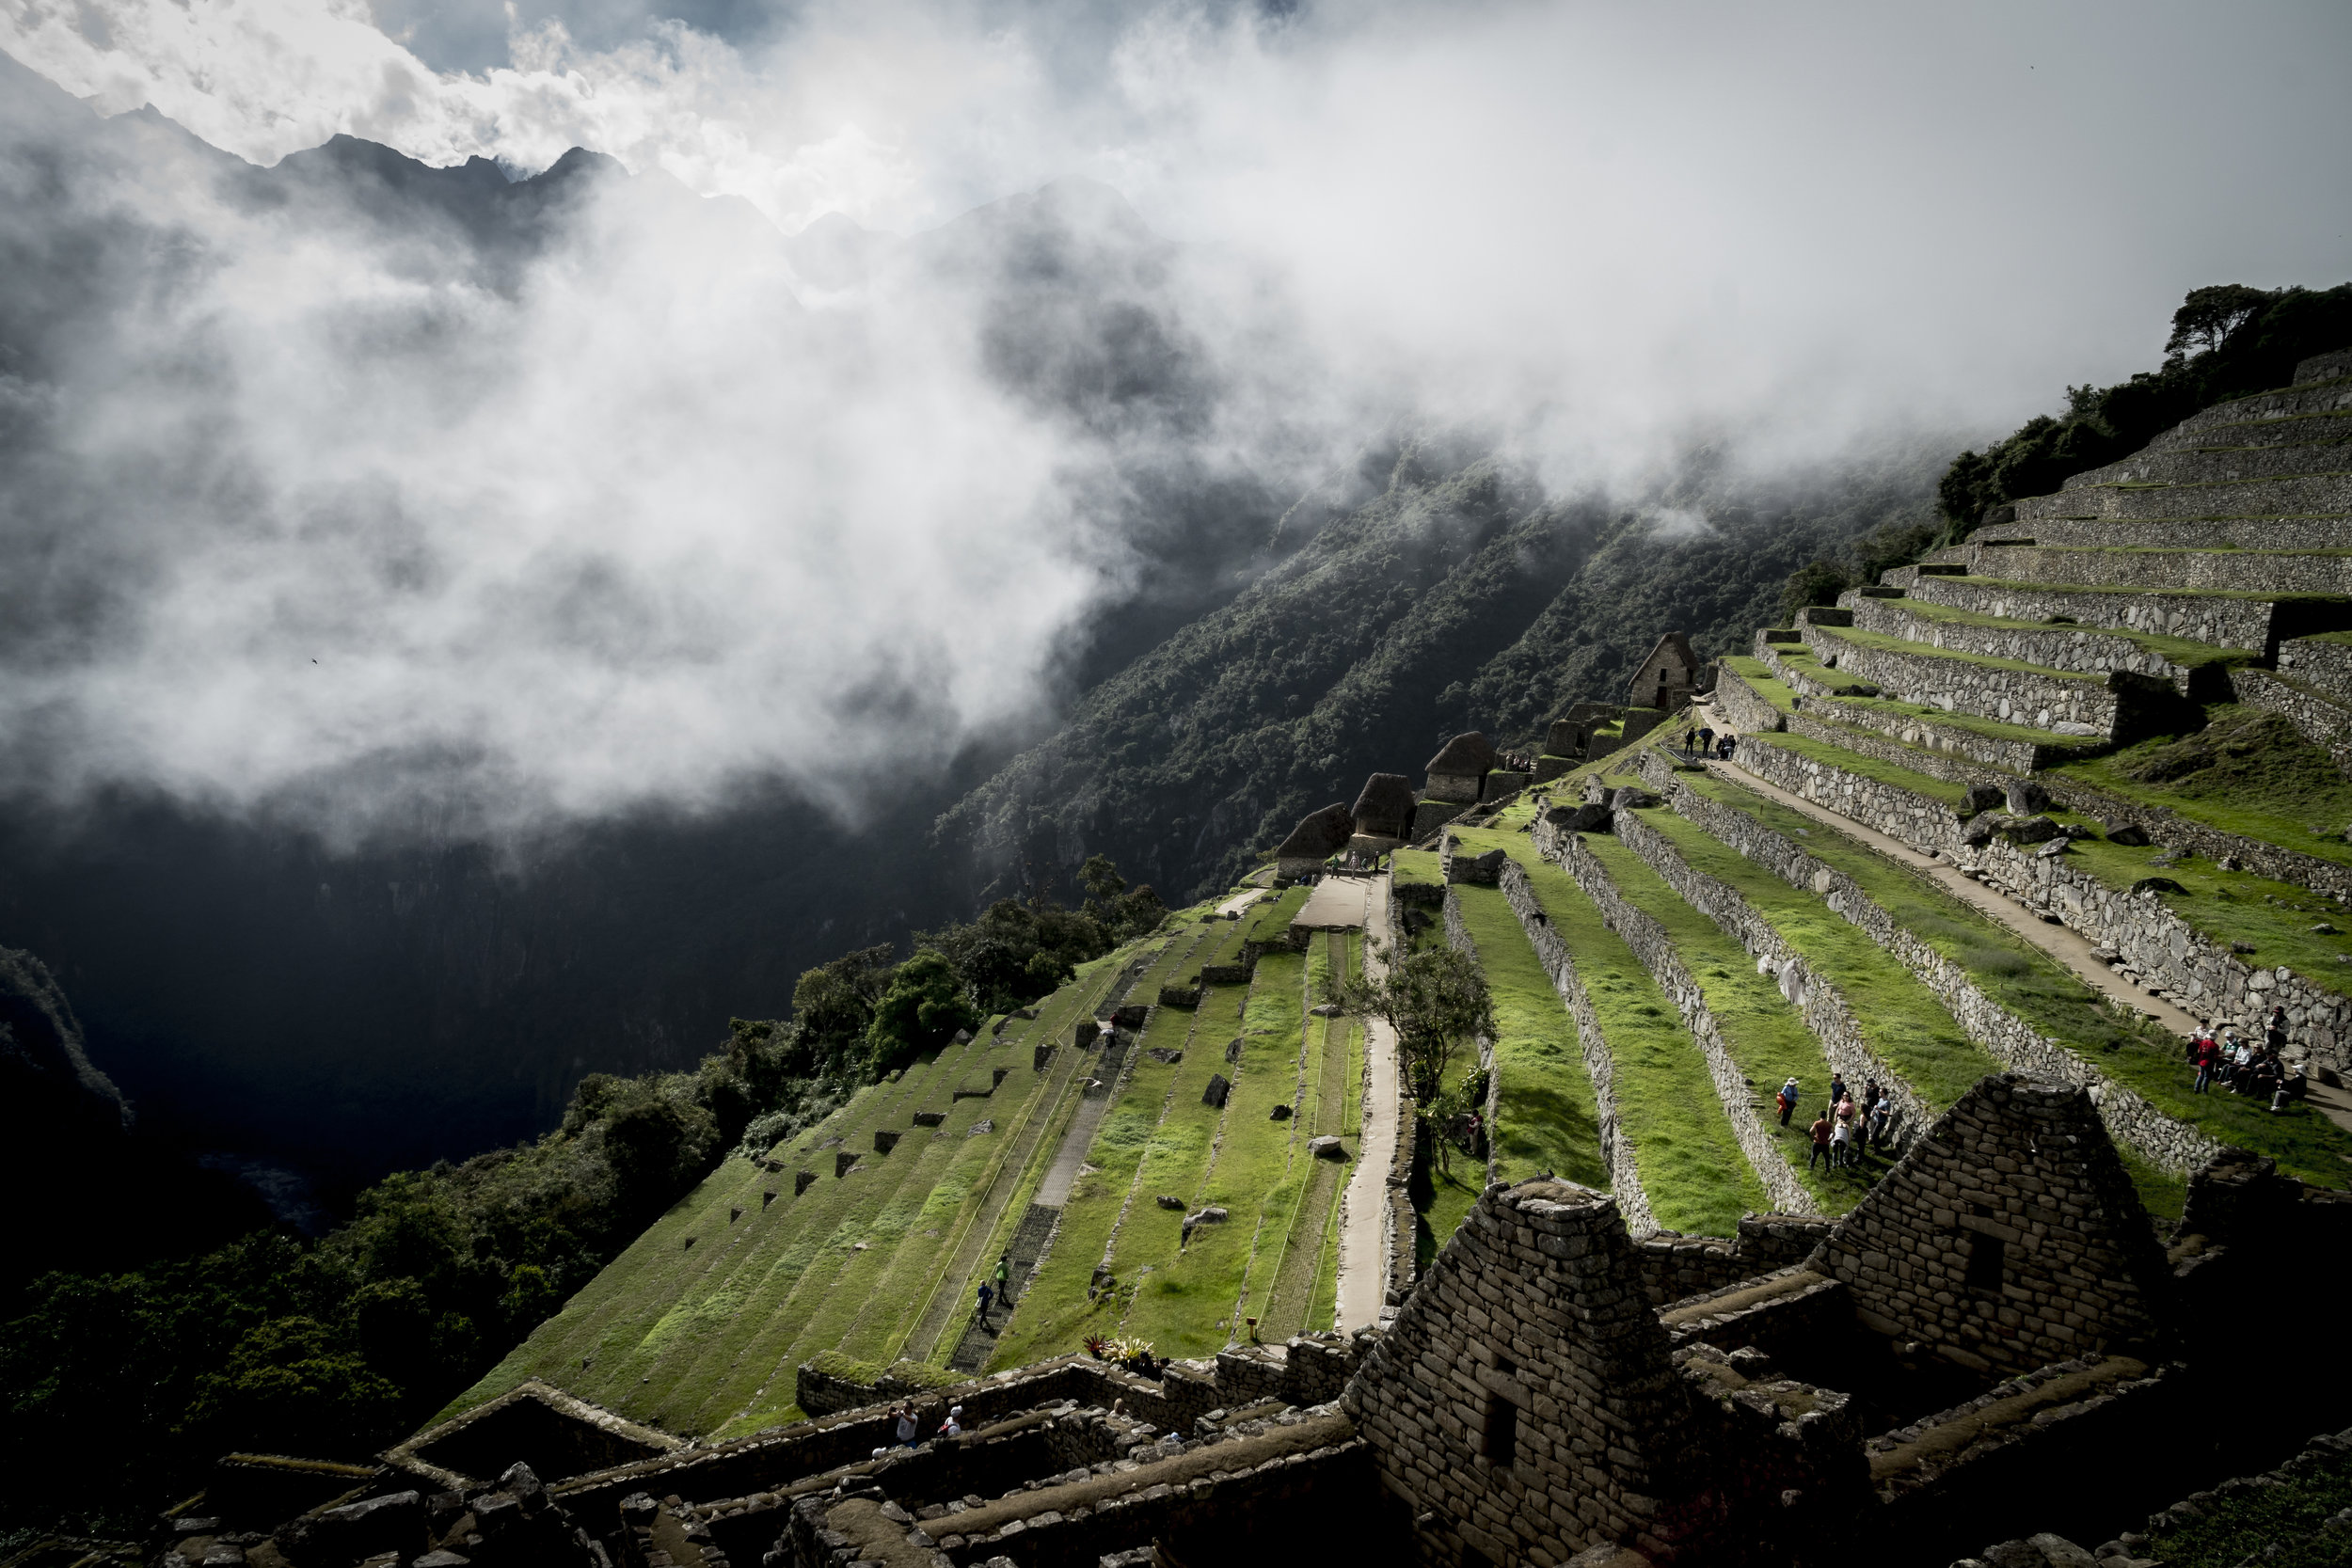 Peru Experience - In the Inca Valley